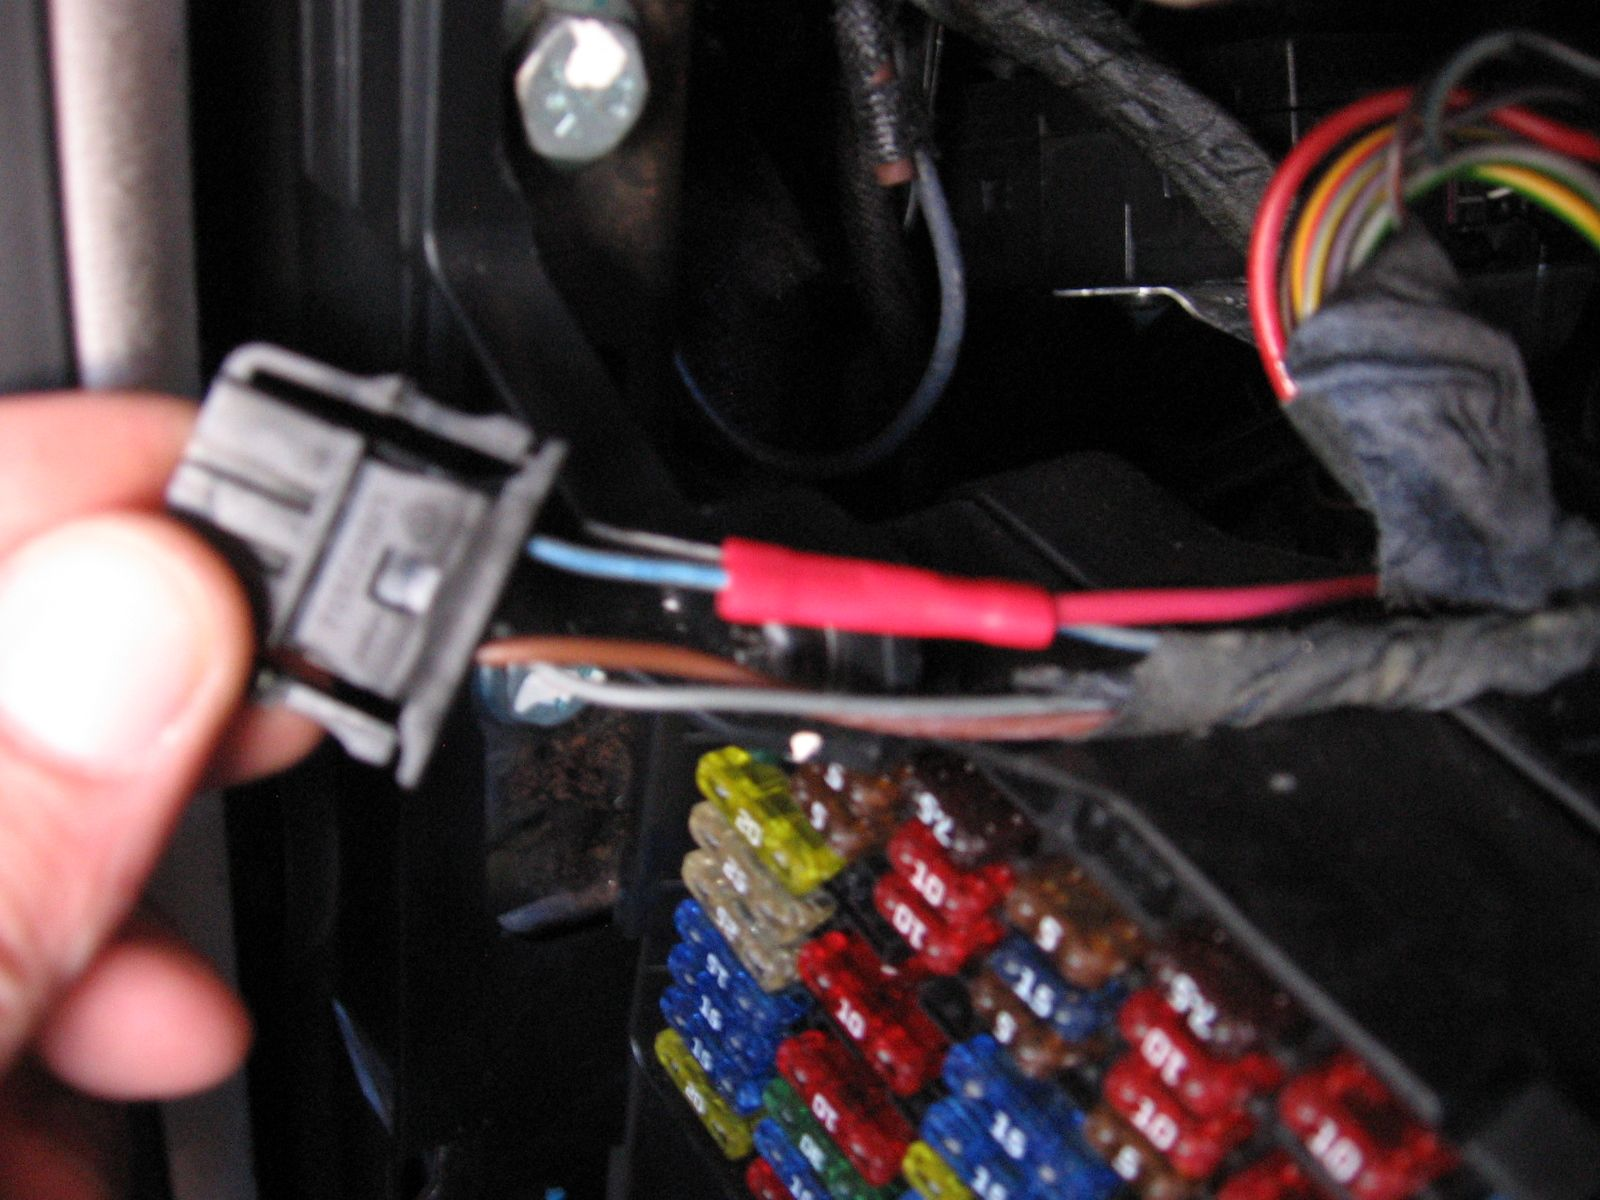 How to Install a Boost Gauge and Wires in an MKIV VW or